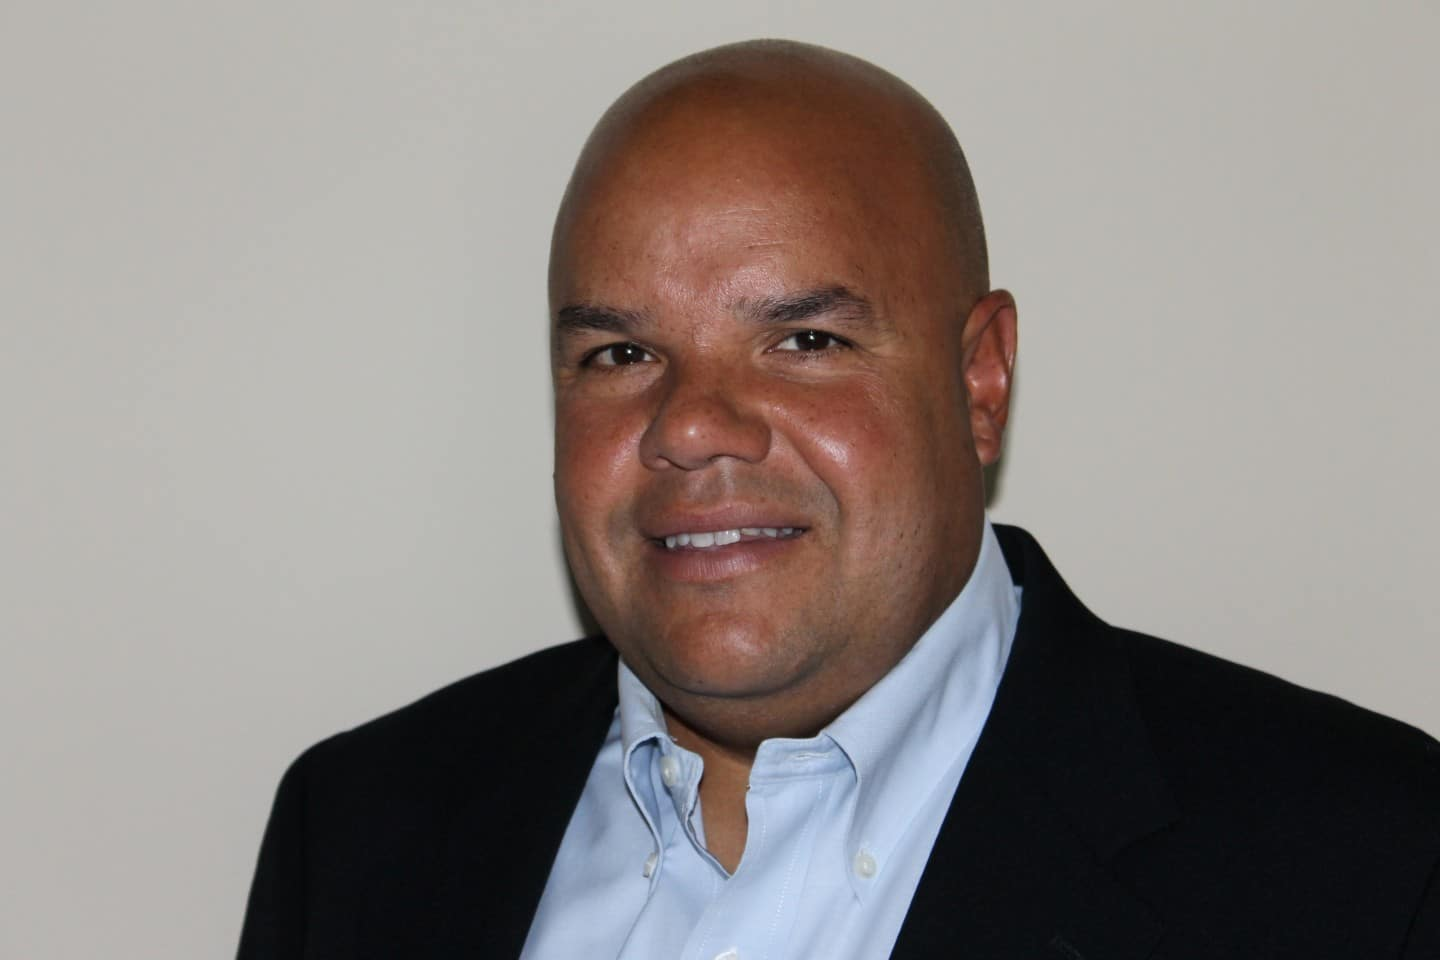 Gil Santaliz, Founder and Managing Member of NJFX